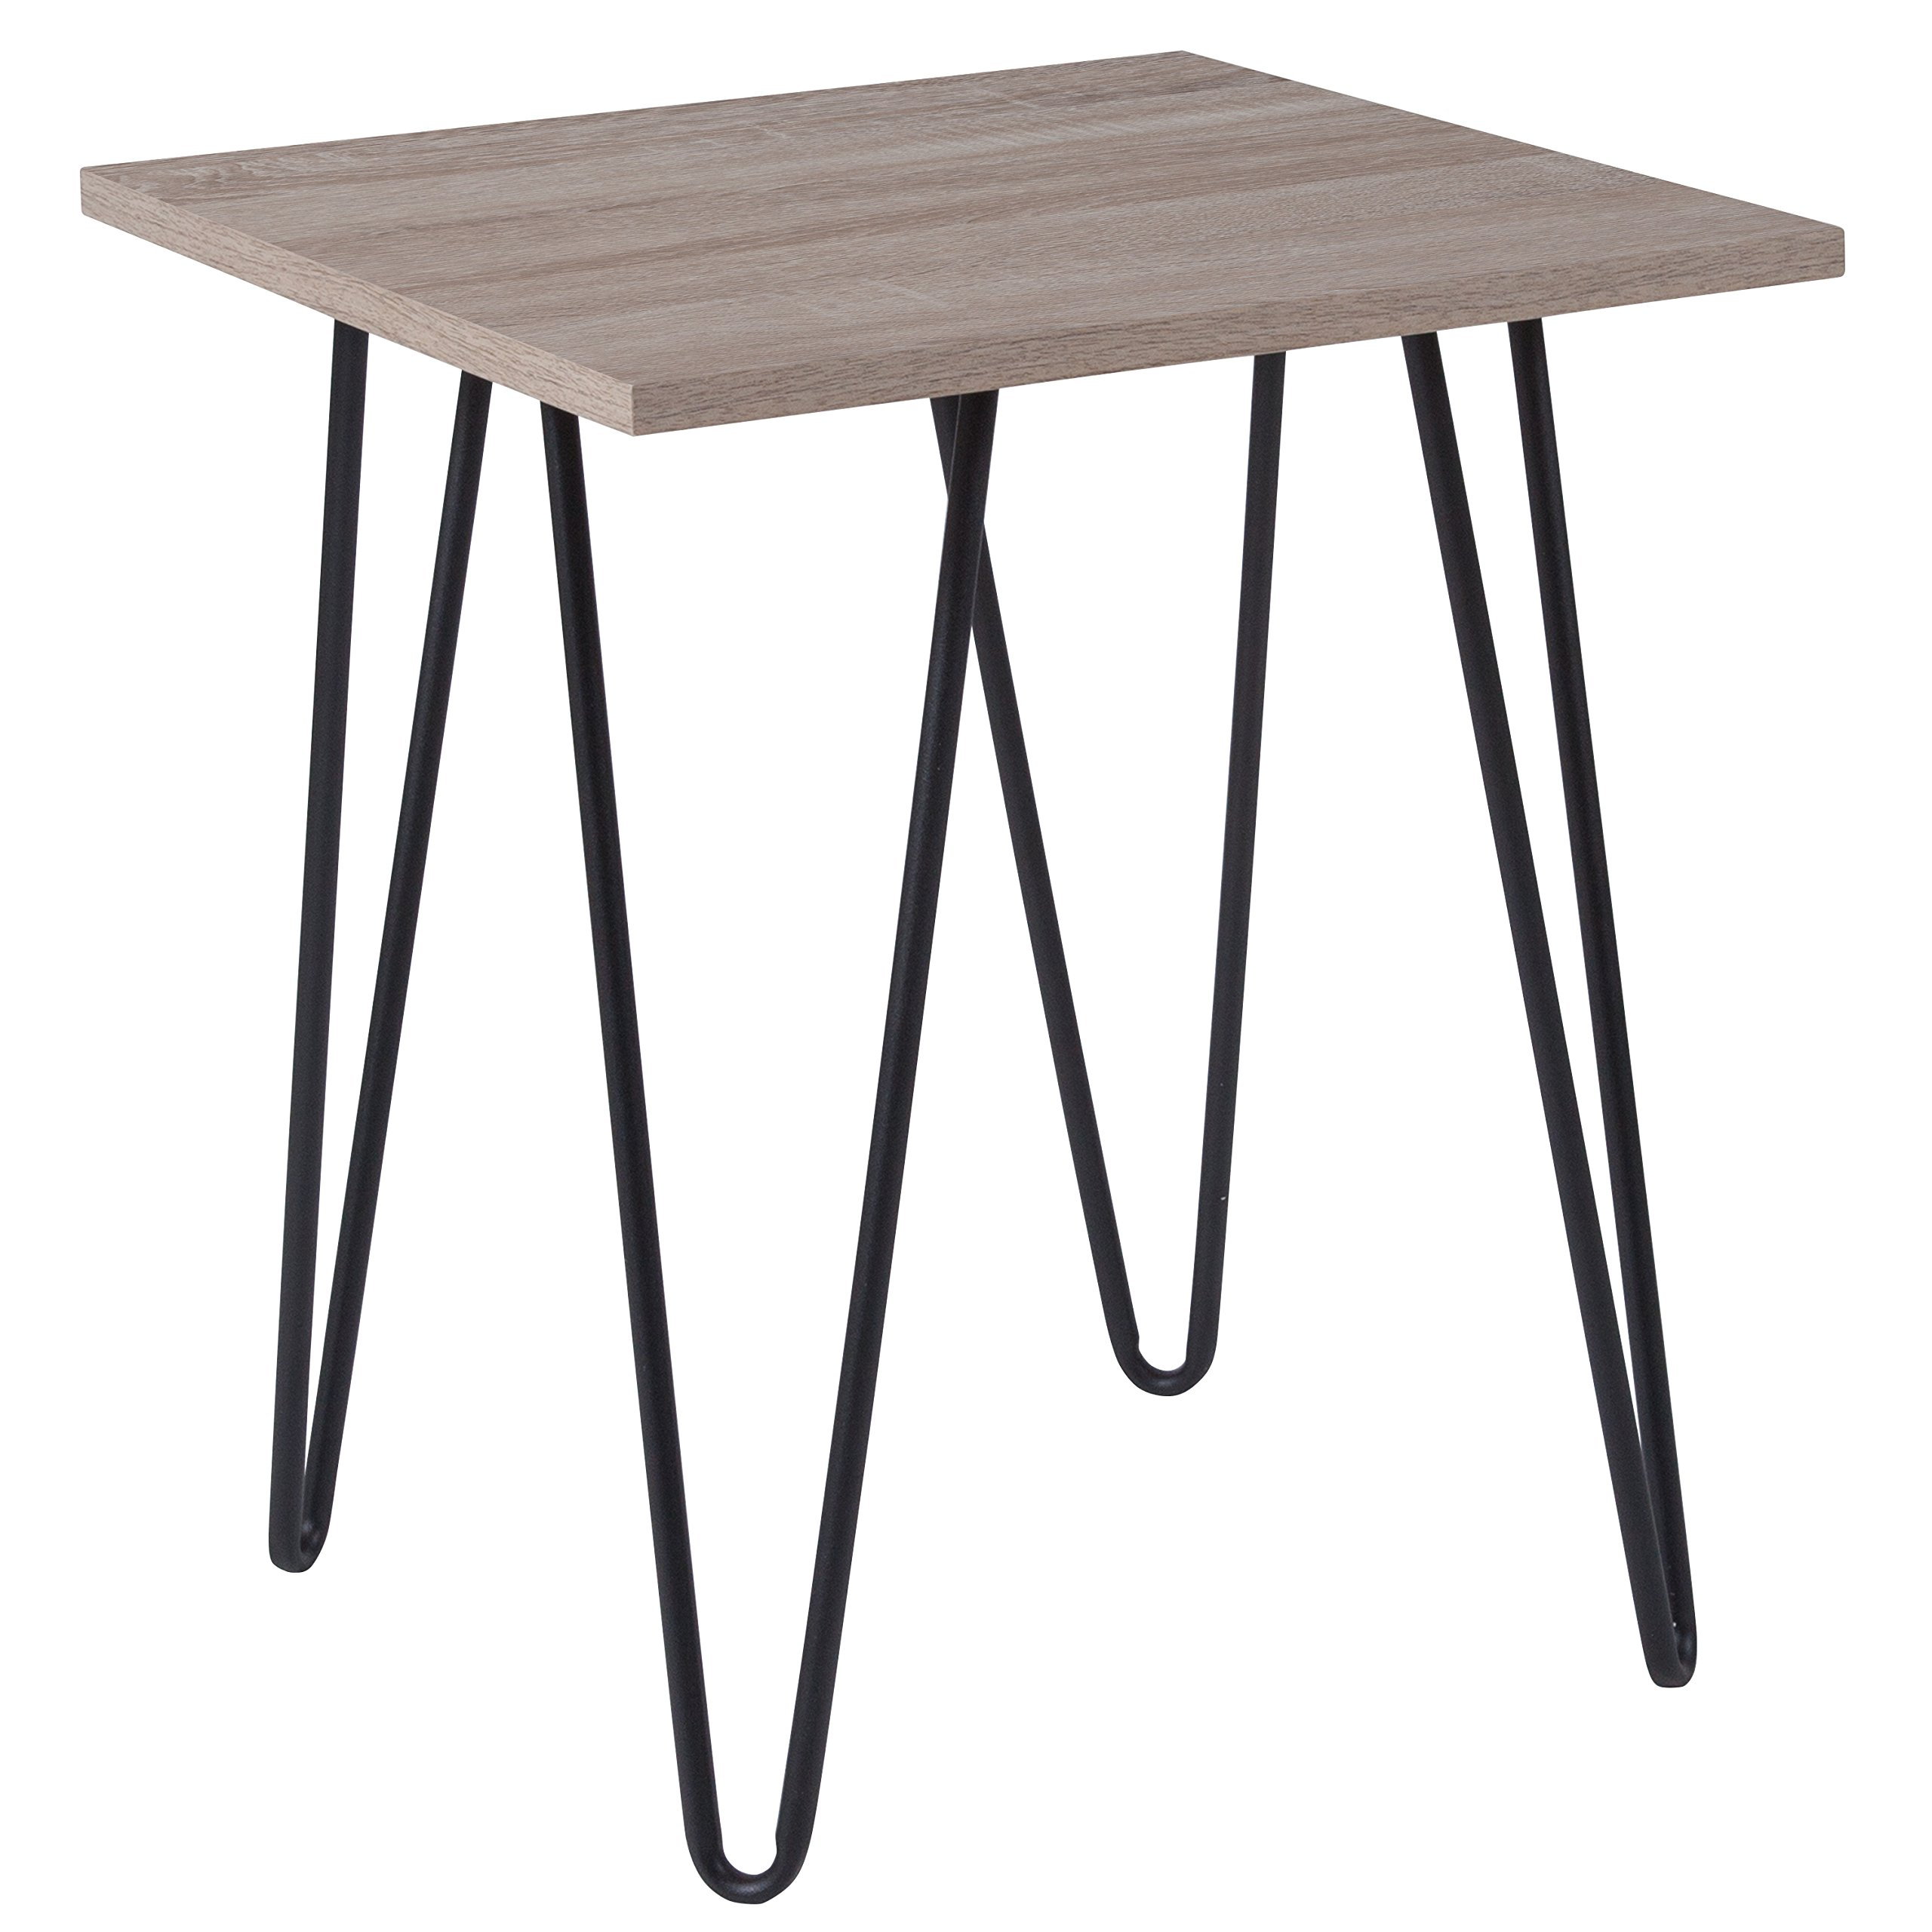 Driftwood End Table: End Table Driftwood Wood Grain Gray Furniture Plant Stand